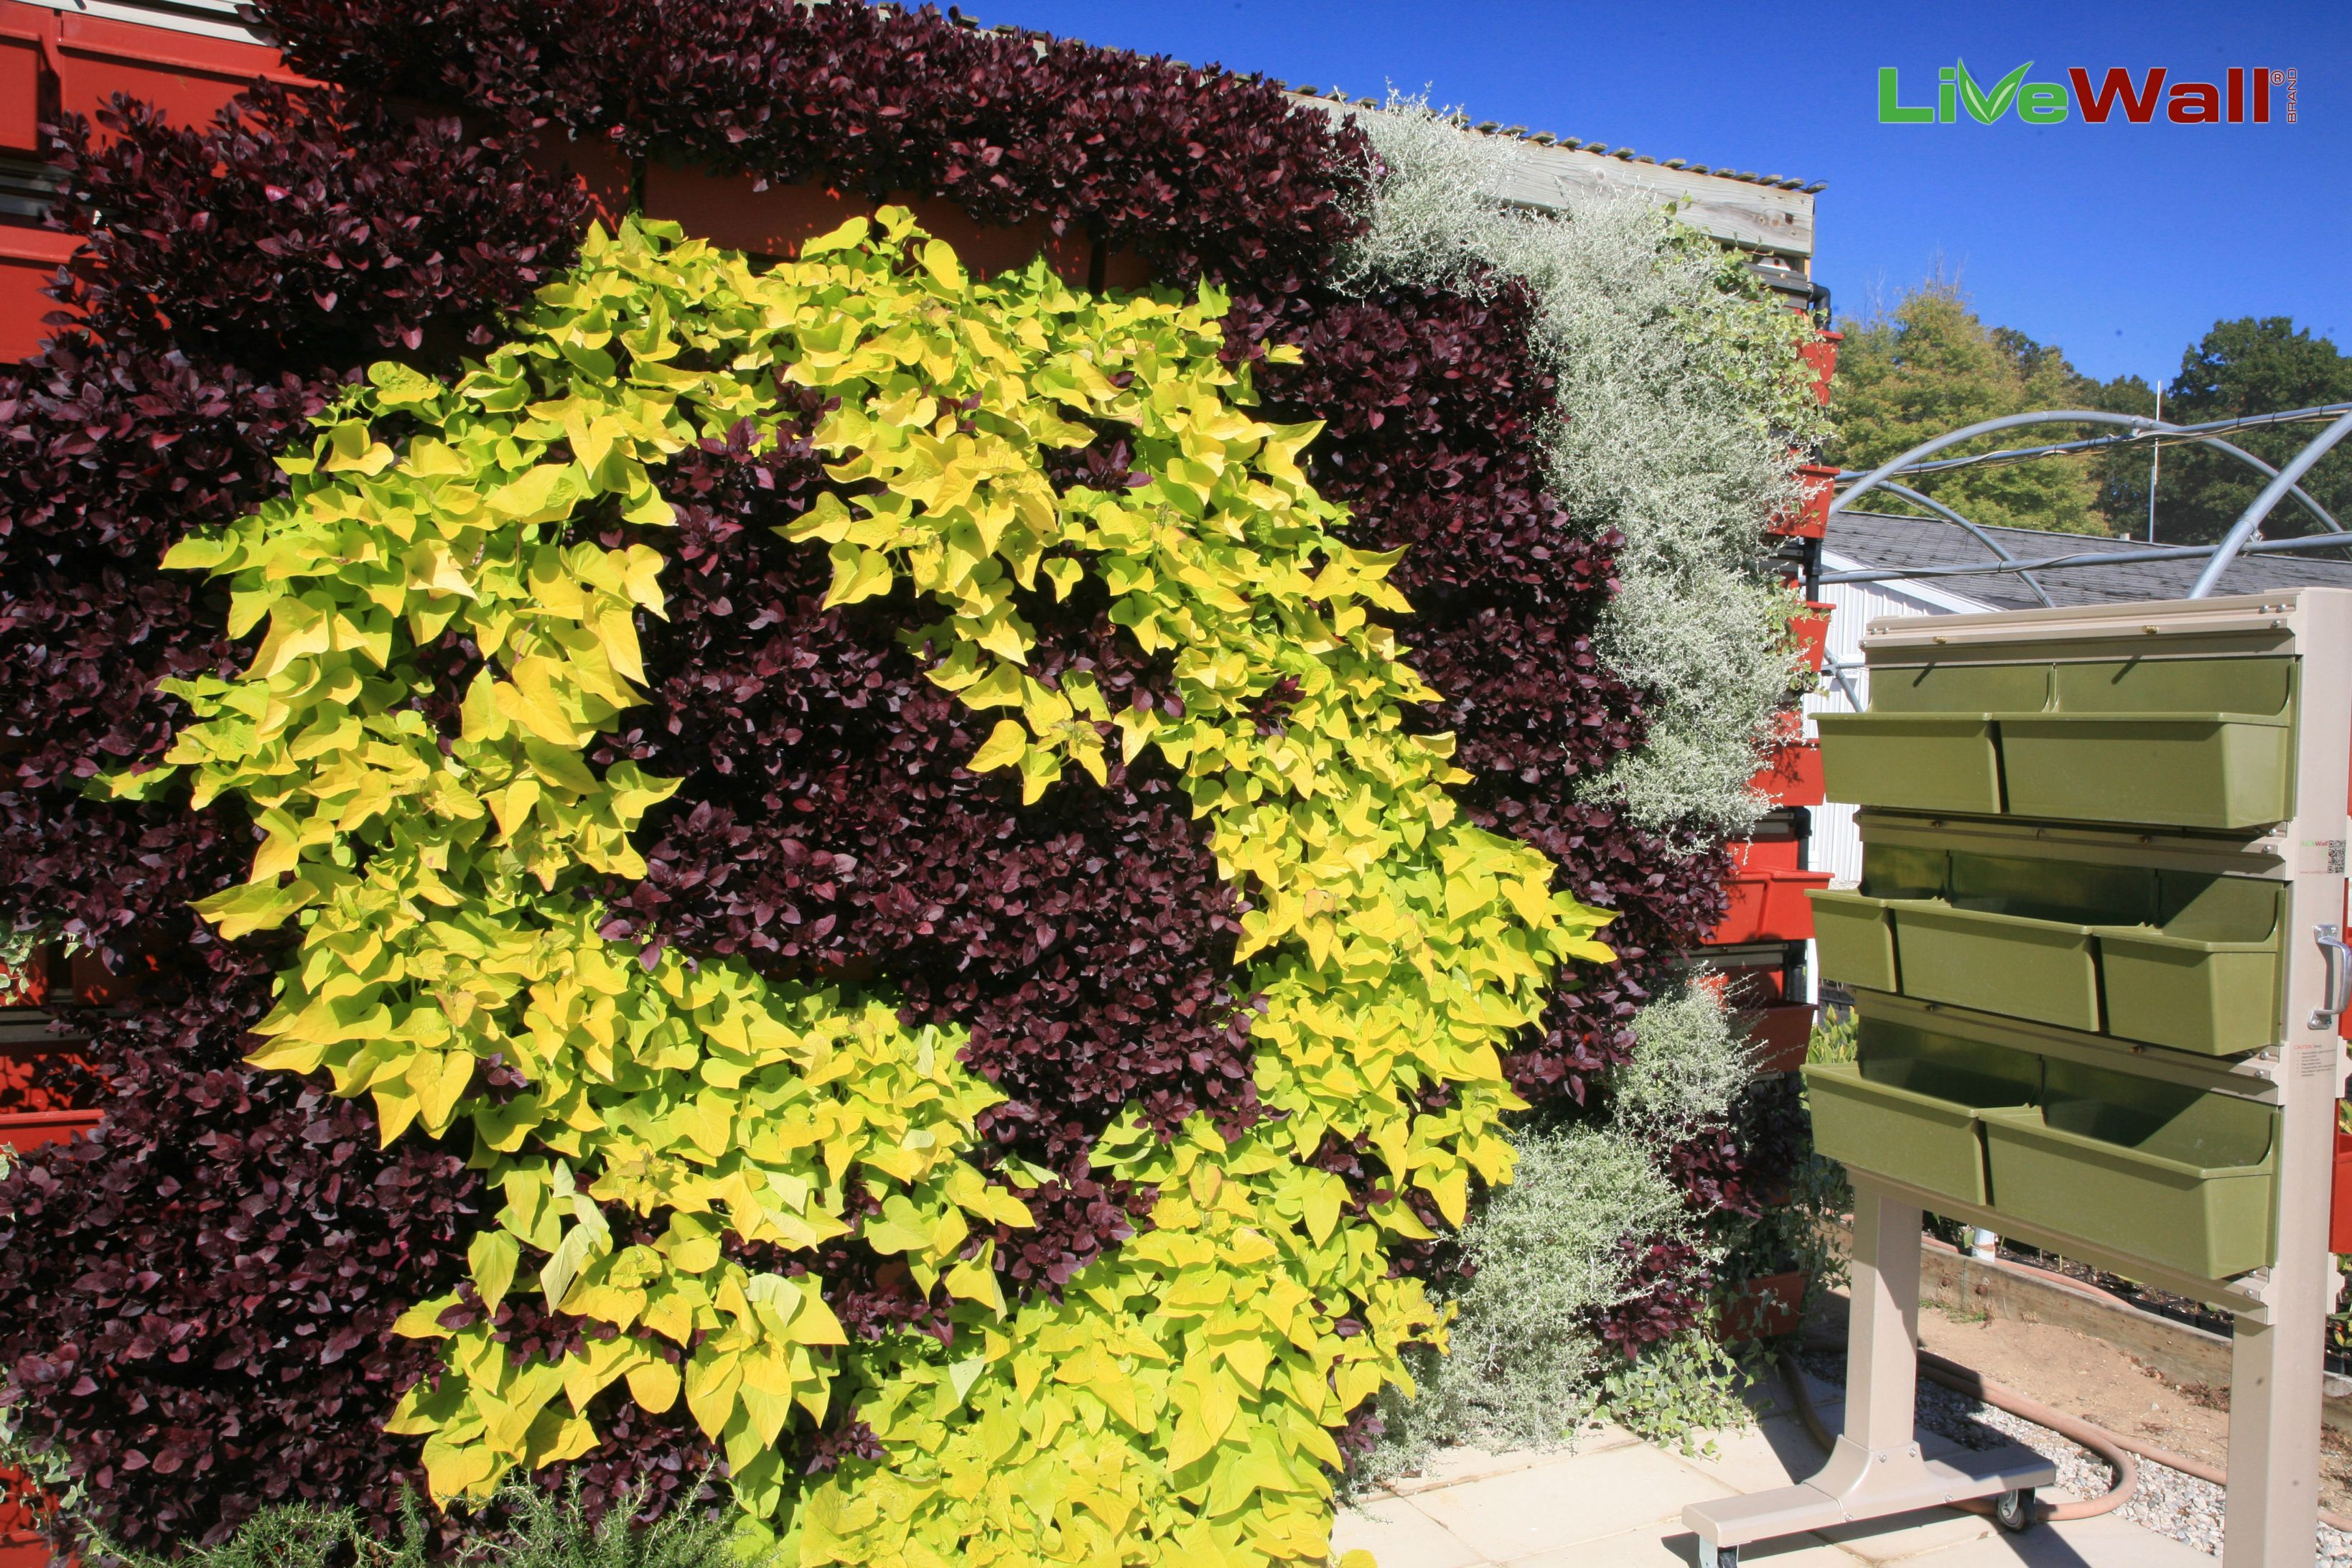 Livewall green wall system make conferences more comfortable - The Mobile Livescreen System Right Allows You To Be Mobile And Grow Your Vertical Living Wallsgreen